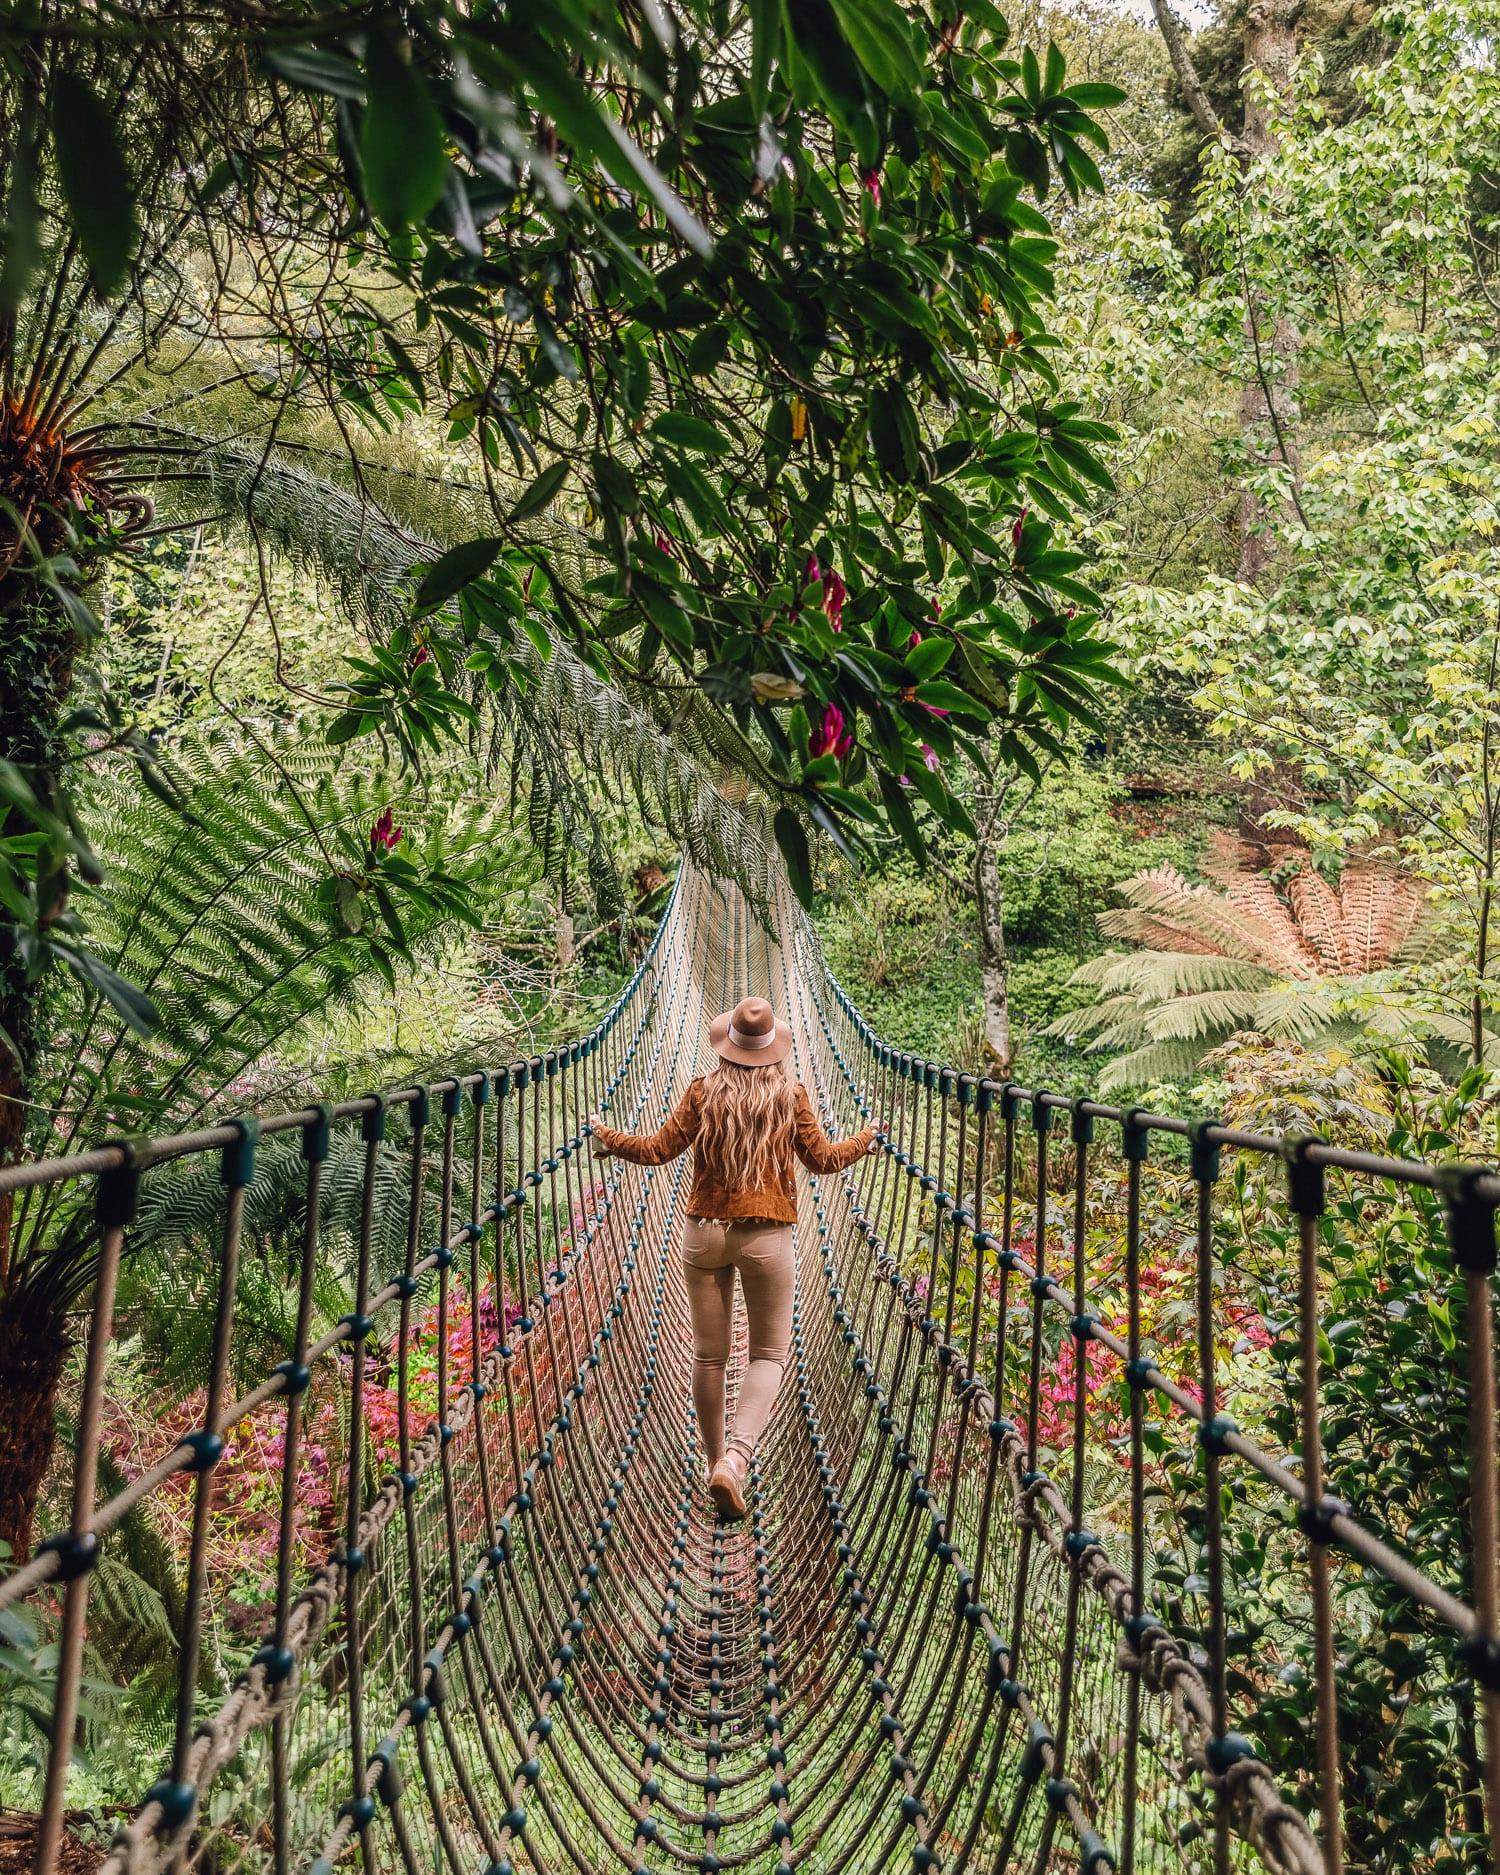 Burma Rope Bridge in The Lost Gardens of Heligan | Most Instagrammable Places in Cornwall, UK